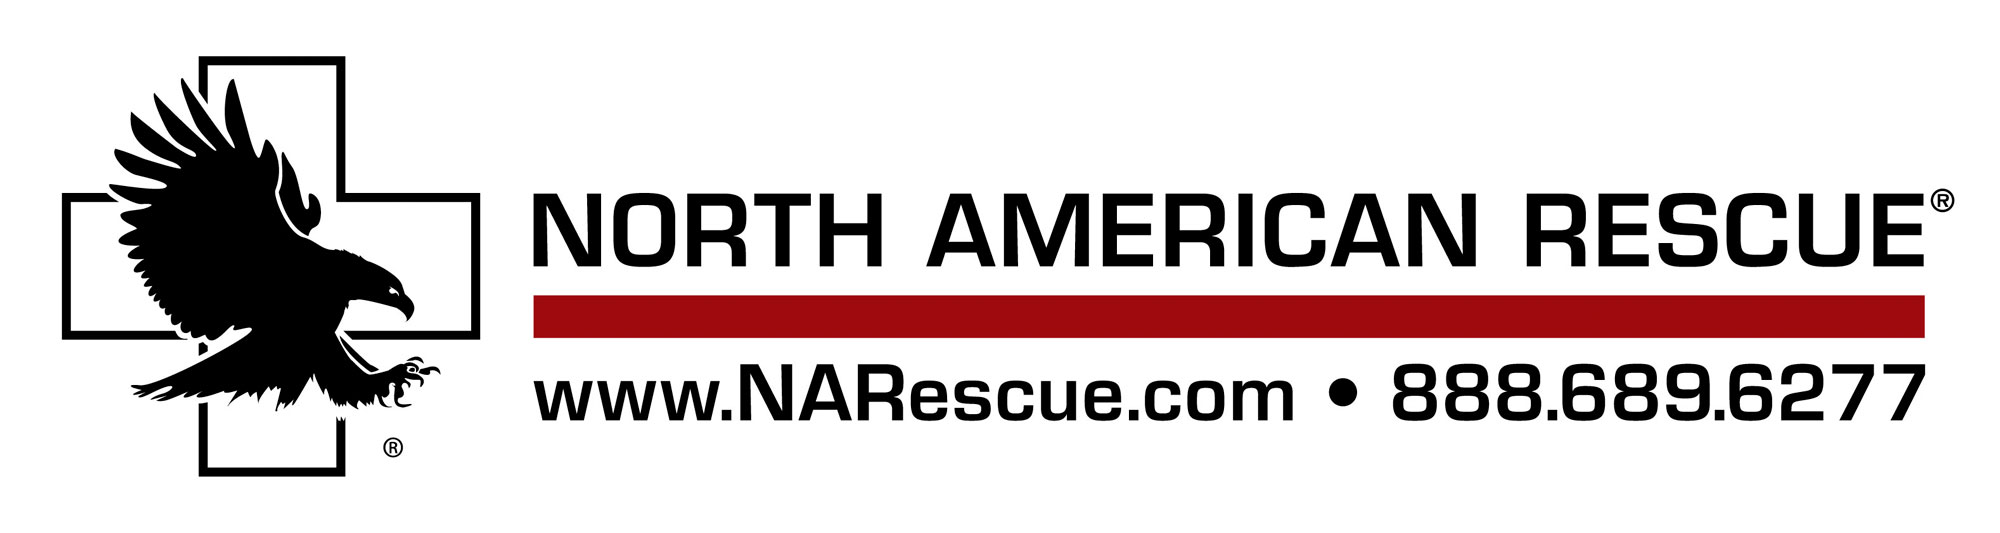 North American Rescue Announces Acquisition of JTM Training